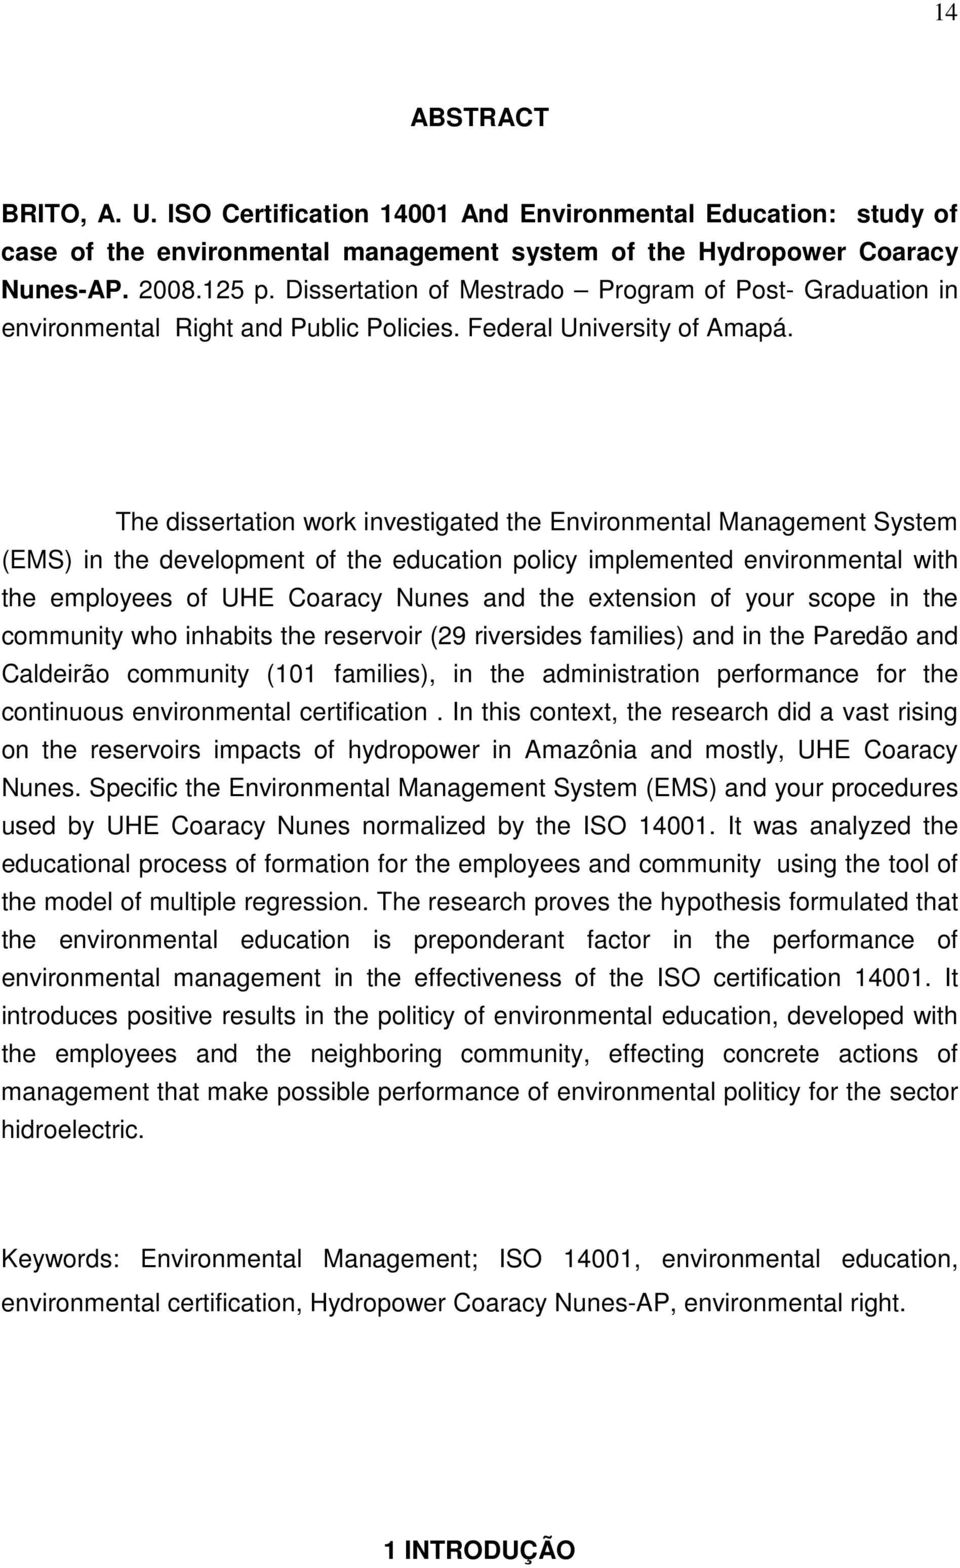 The dissertation work investigated the Environmental Management System (EMS) in the development of the education policy implemented environmental with the employees of UHE Coaracy Nunes and the